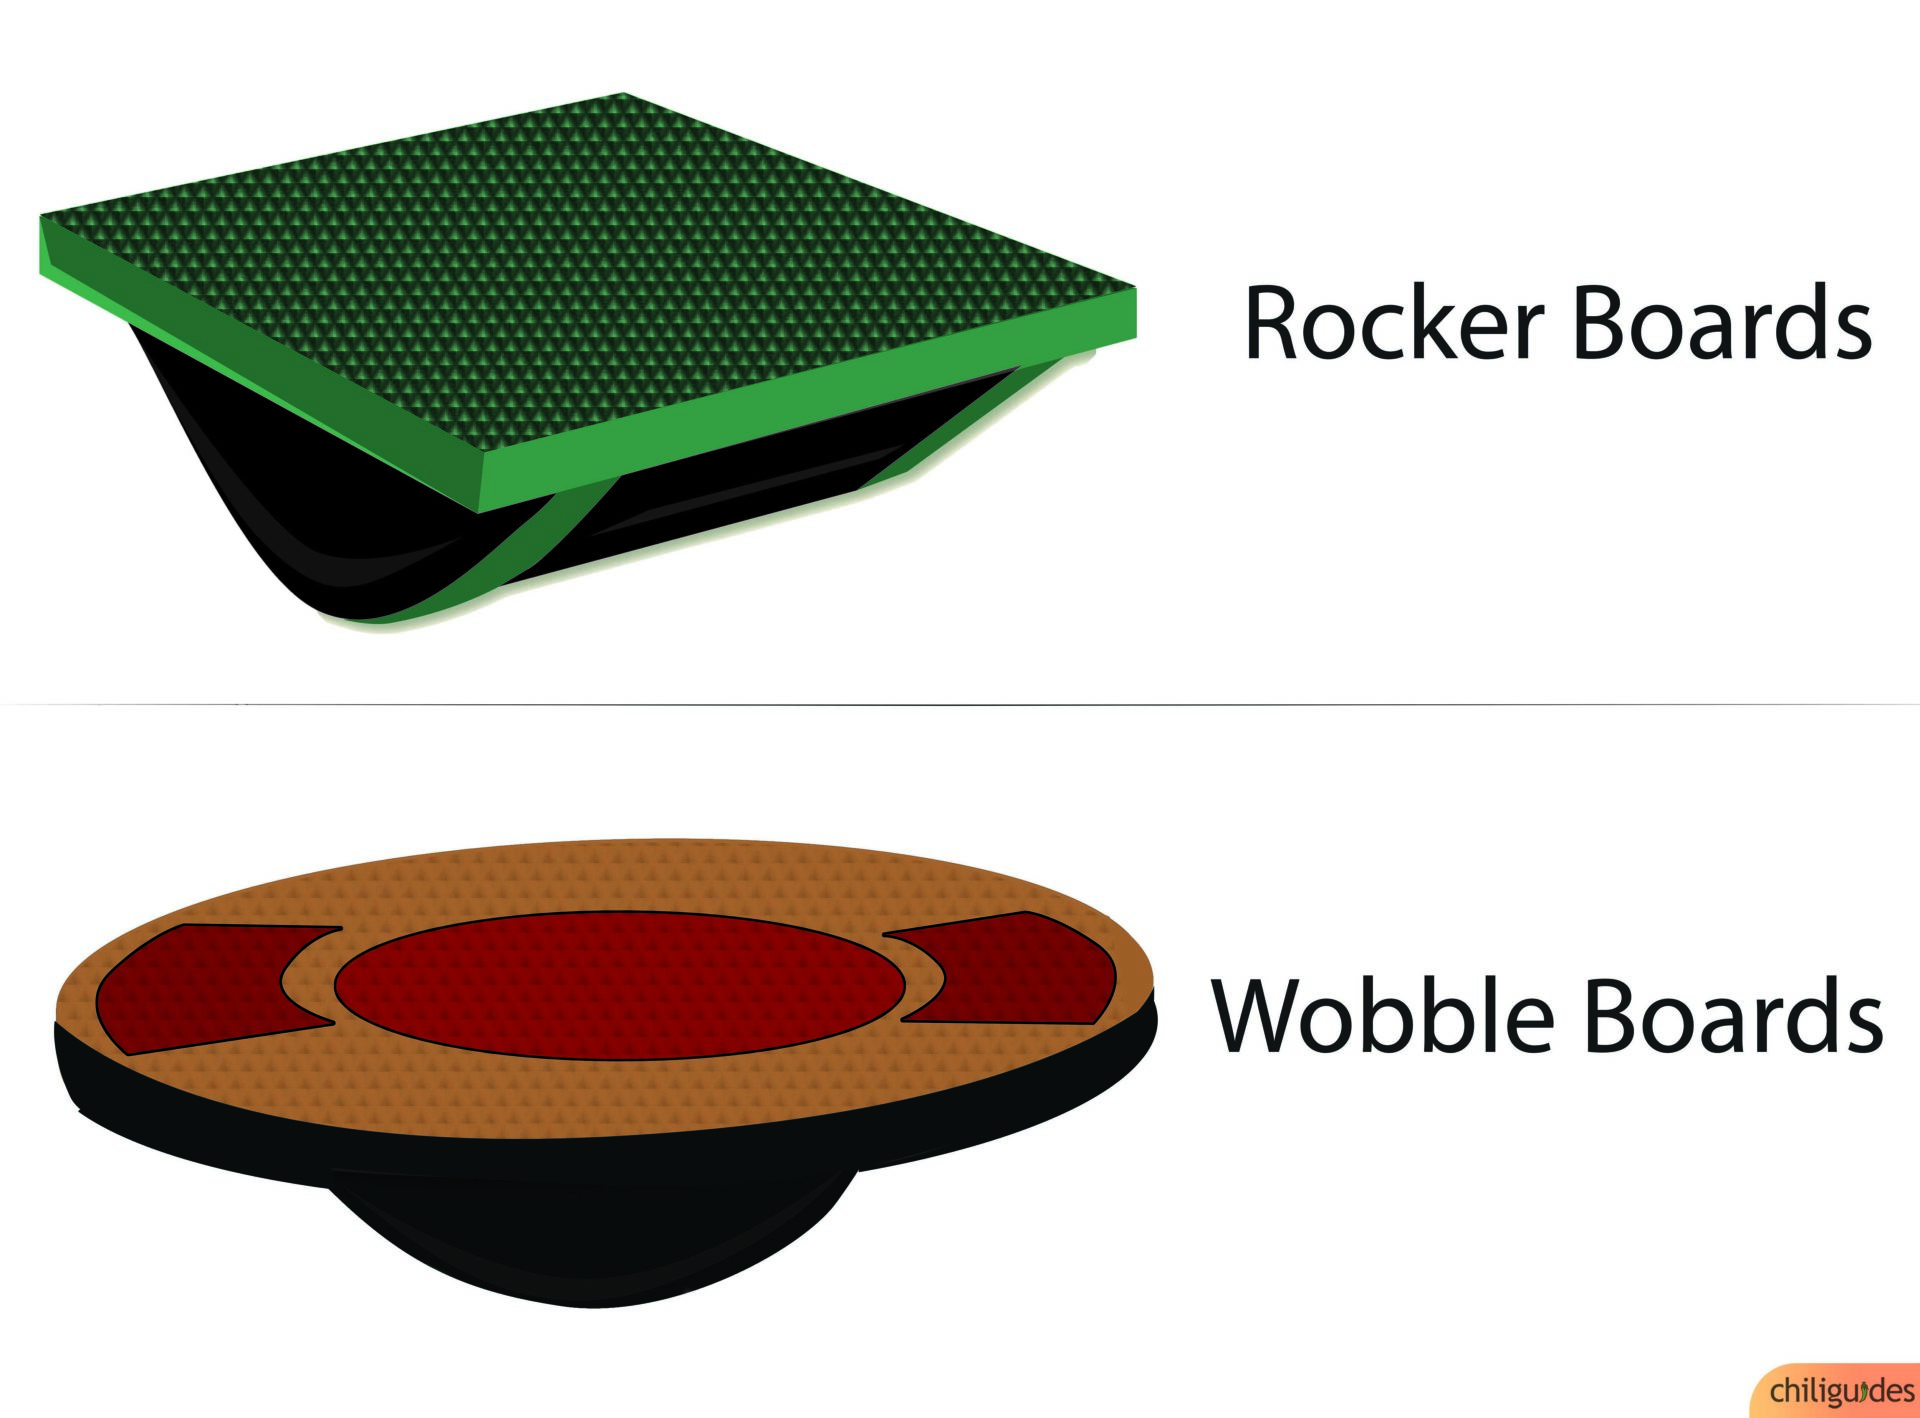 Rocker Boards and Wobble Boards are suitable for exercising.